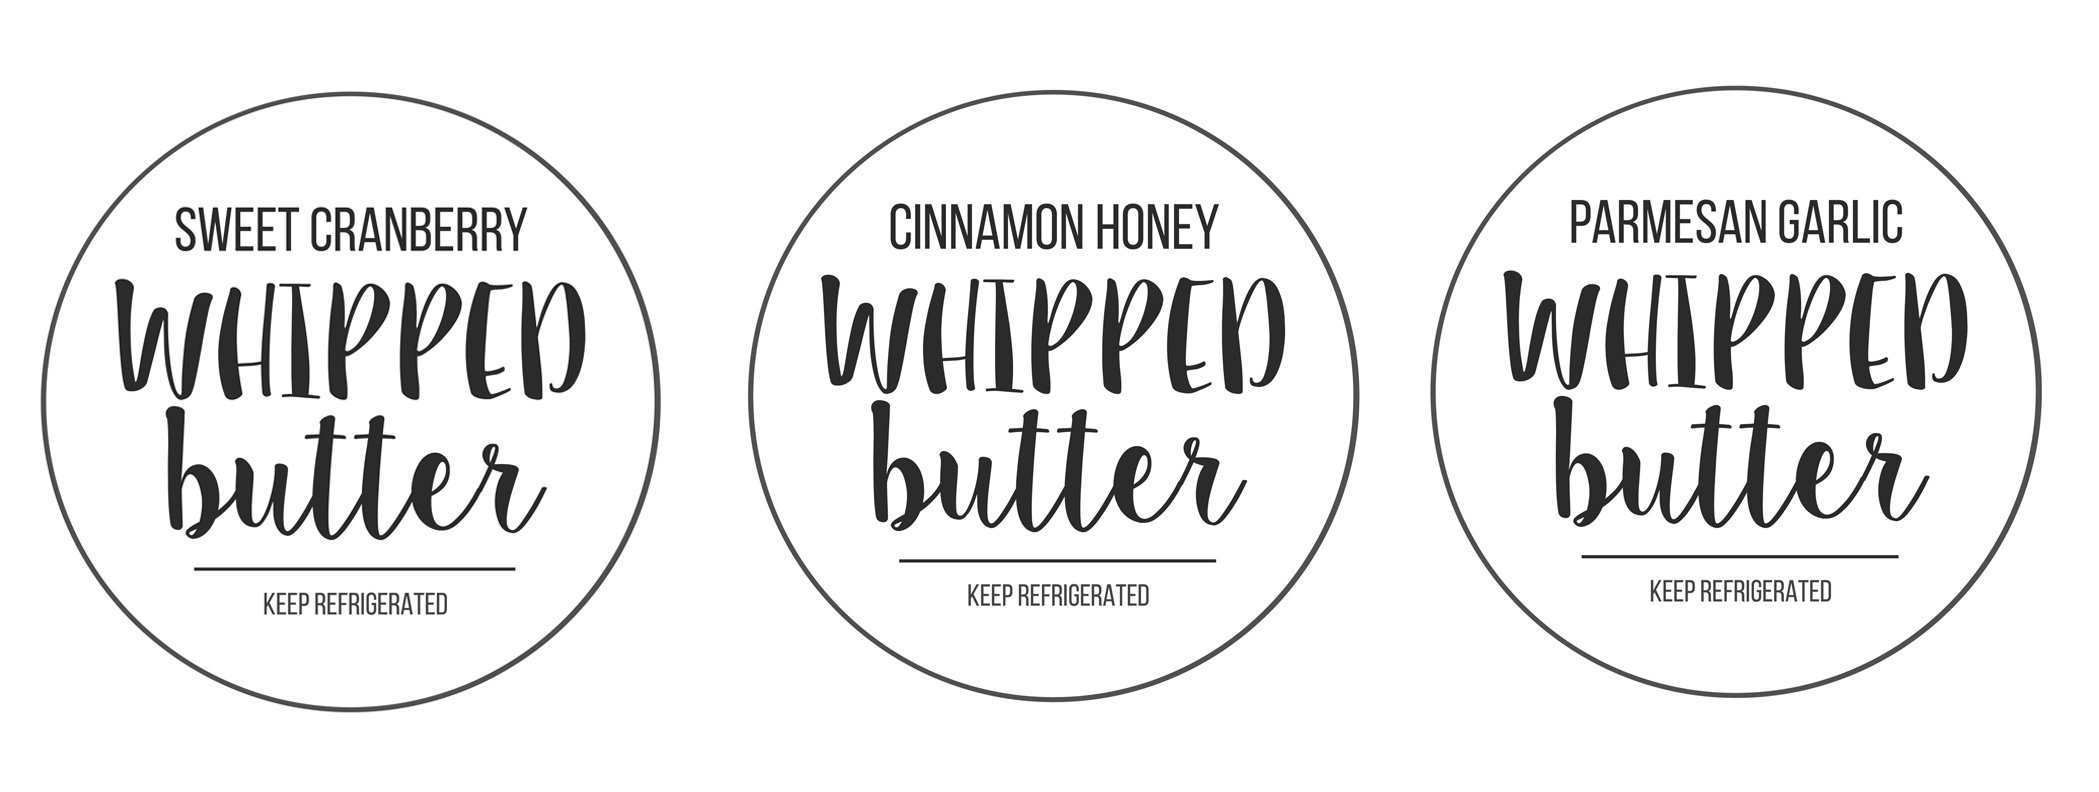 whipped butter.1